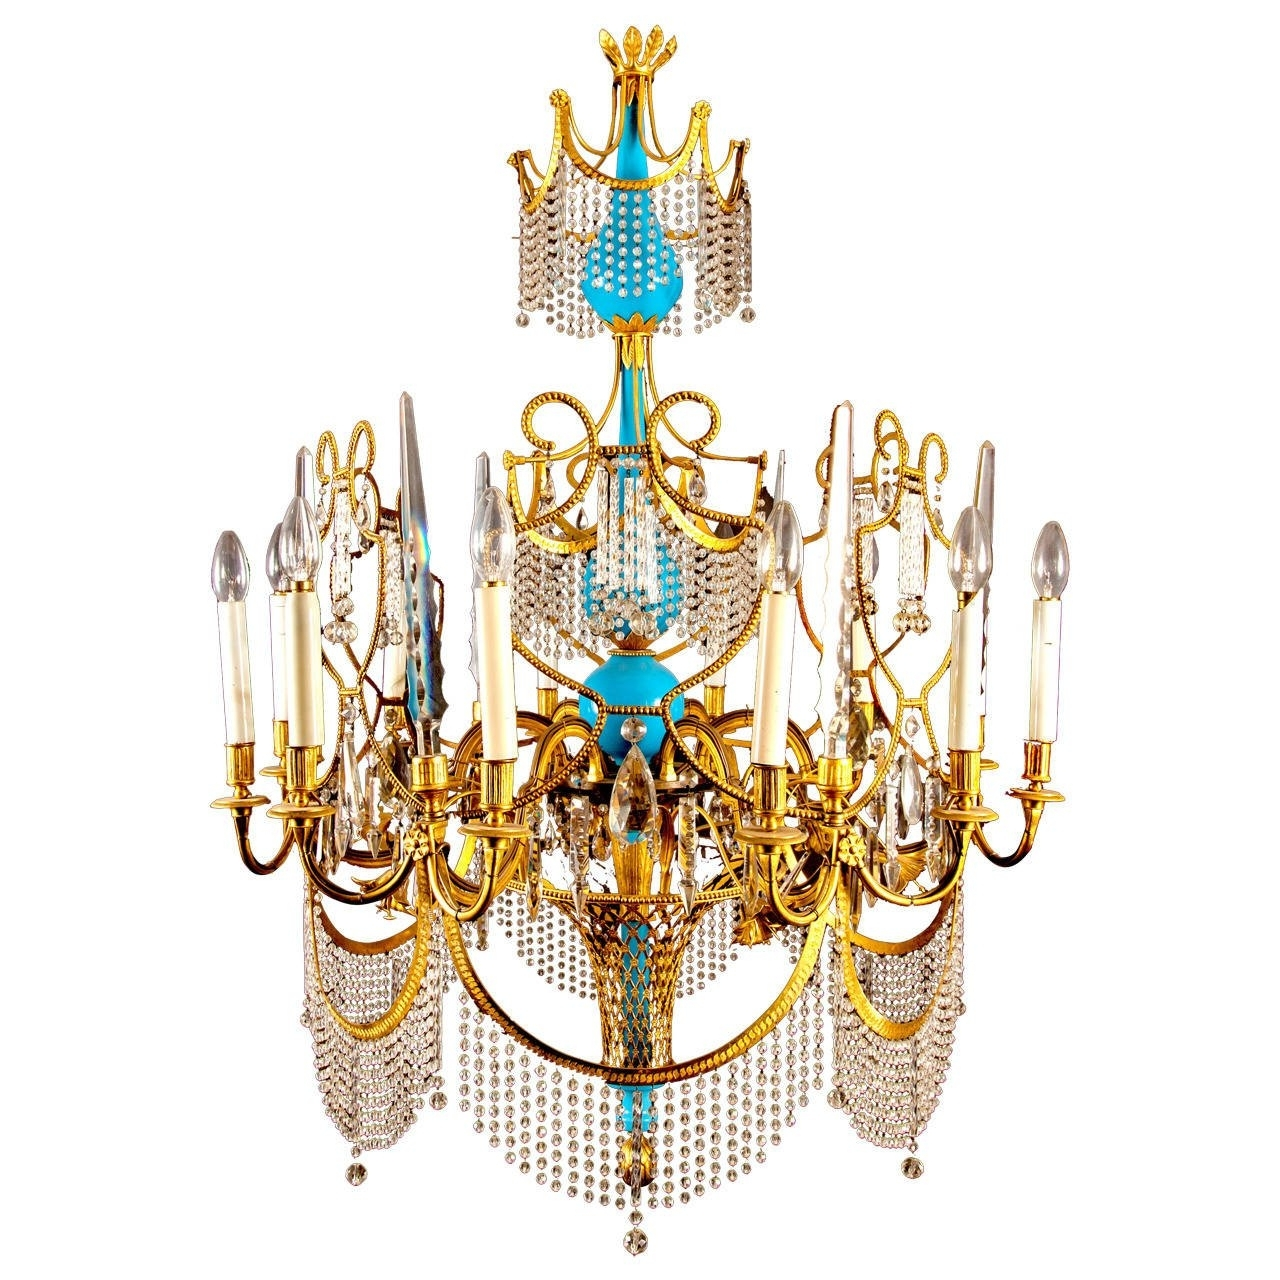 Russian Ormolu, Cut Glass And Blue Porcelain Empire Style Antique Within Most Current Glass Droplet Chandelier (View 16 of 20)